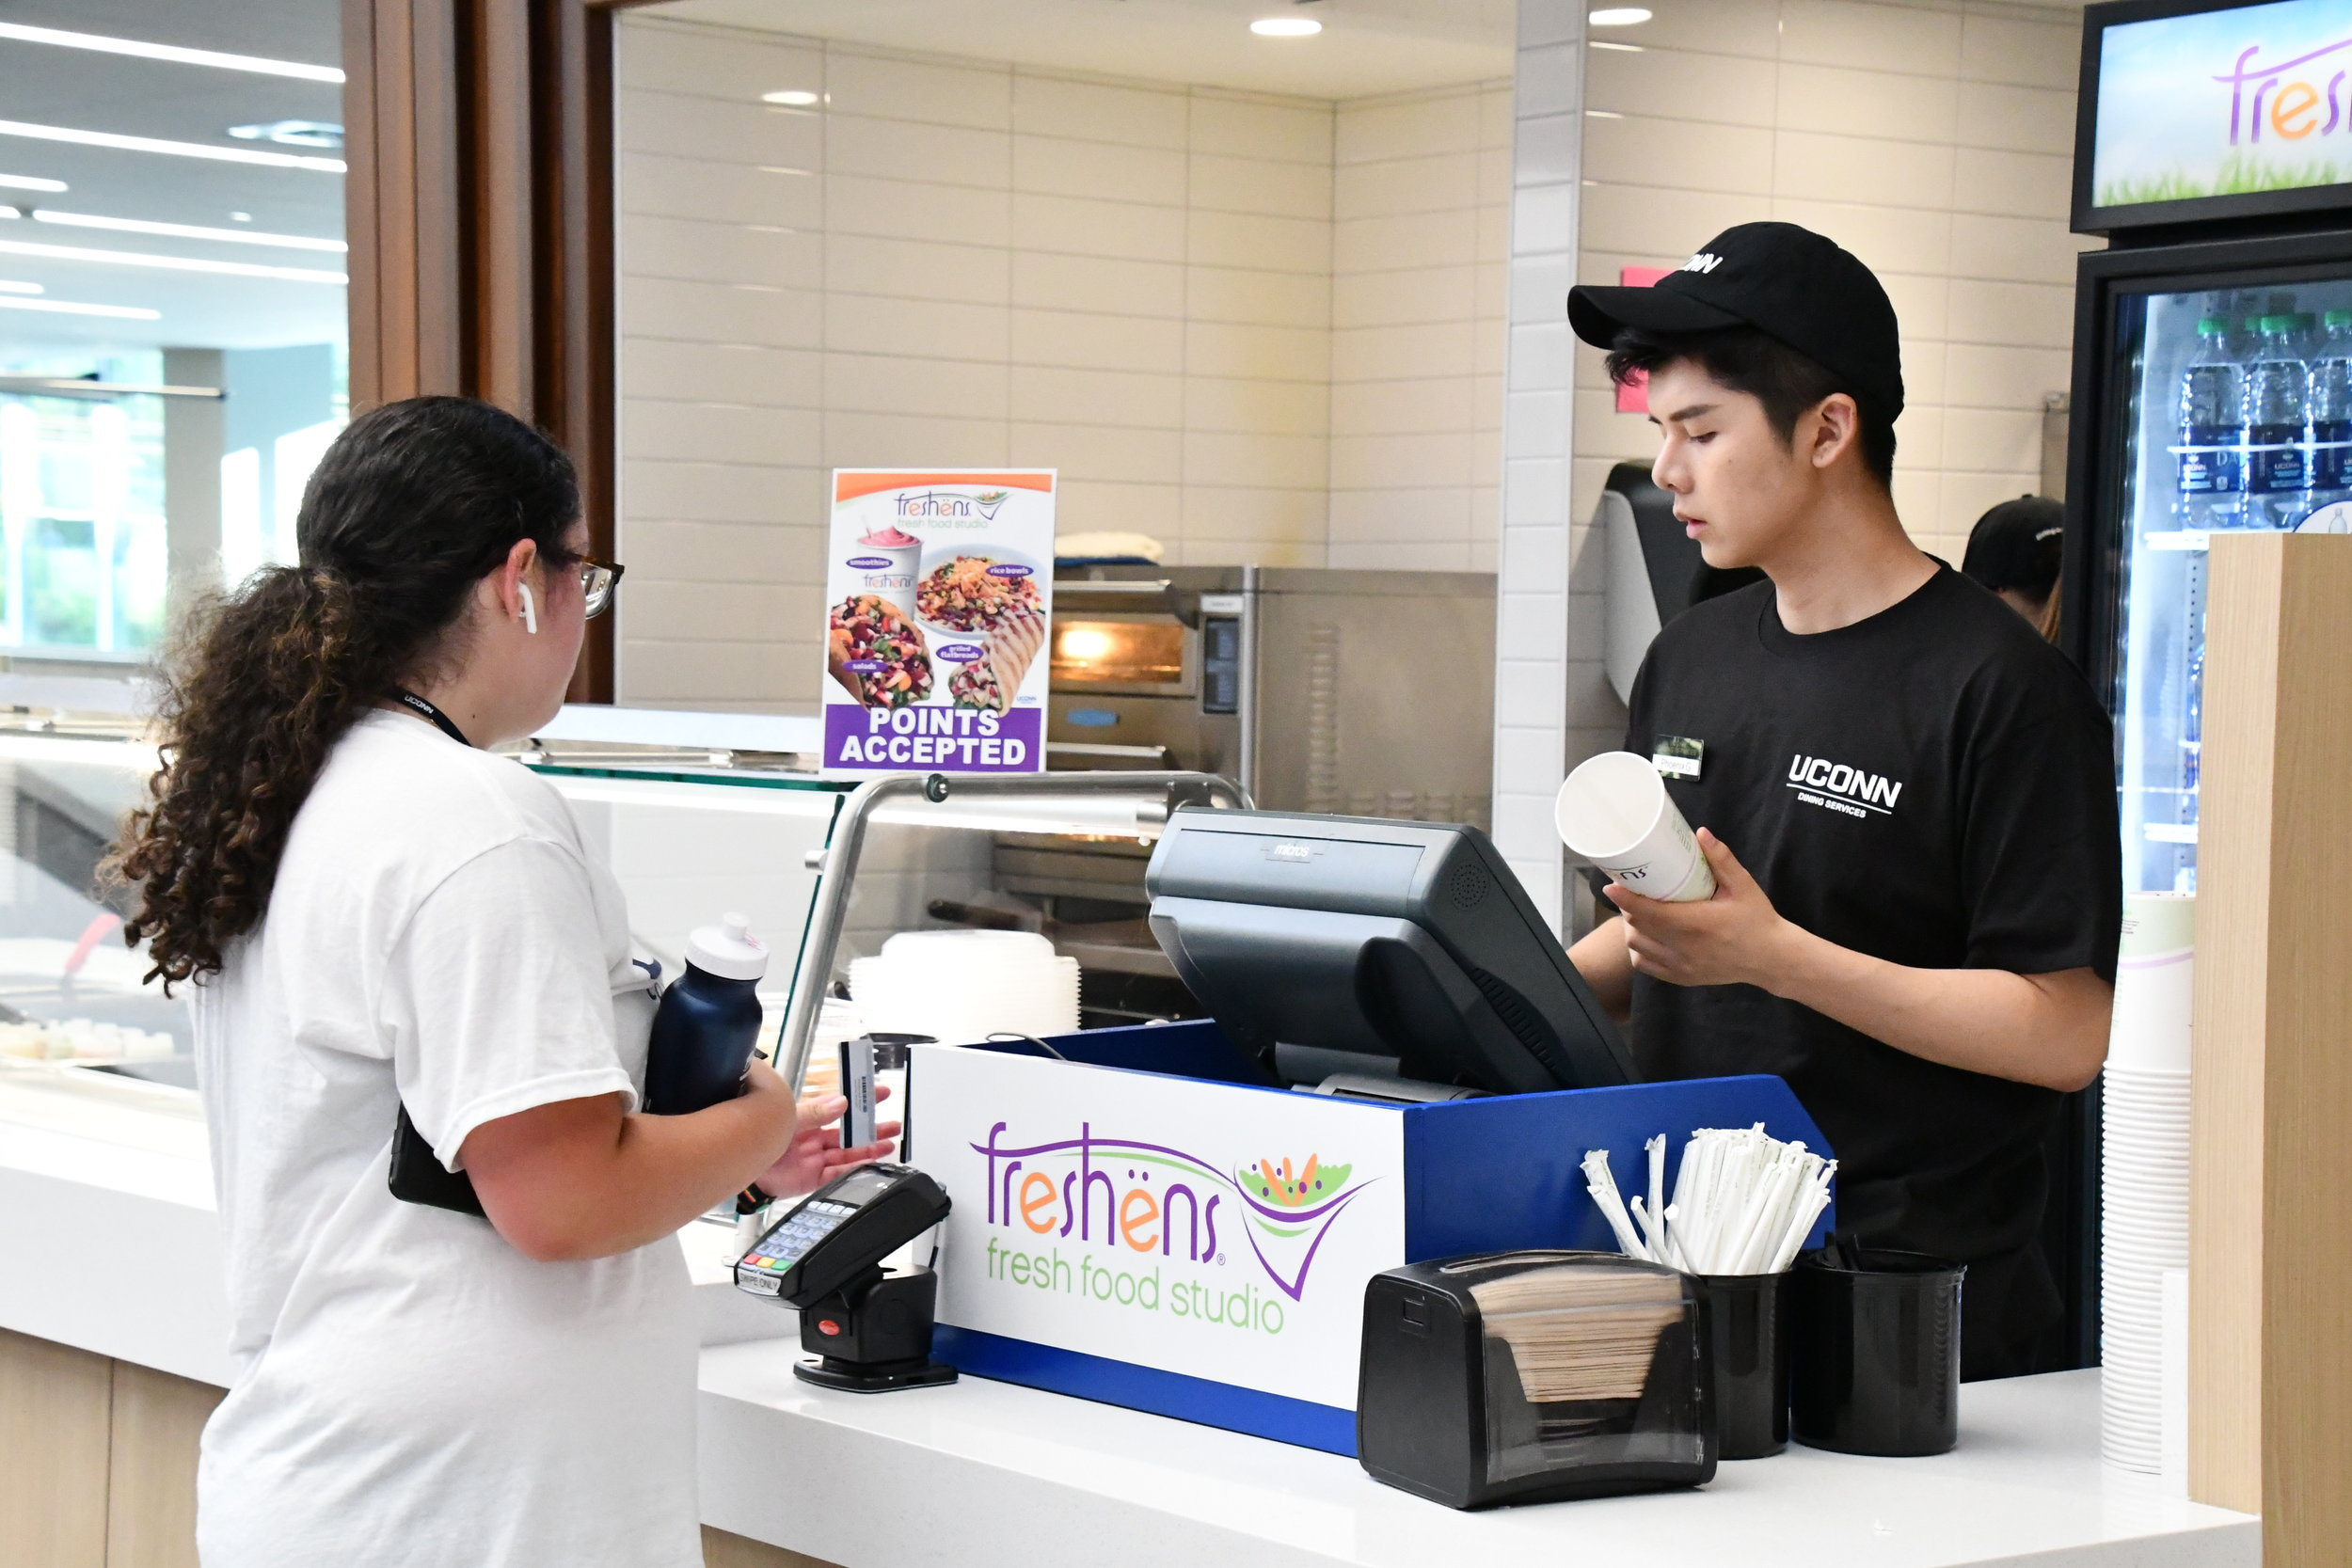 Freshens has moved to the UConn Recreation Center with a new menu that includes grain bowls and toasted wraps among the well-known shakes the chain usually serves.  Photo by Julie Spillane for The Daily Campus.